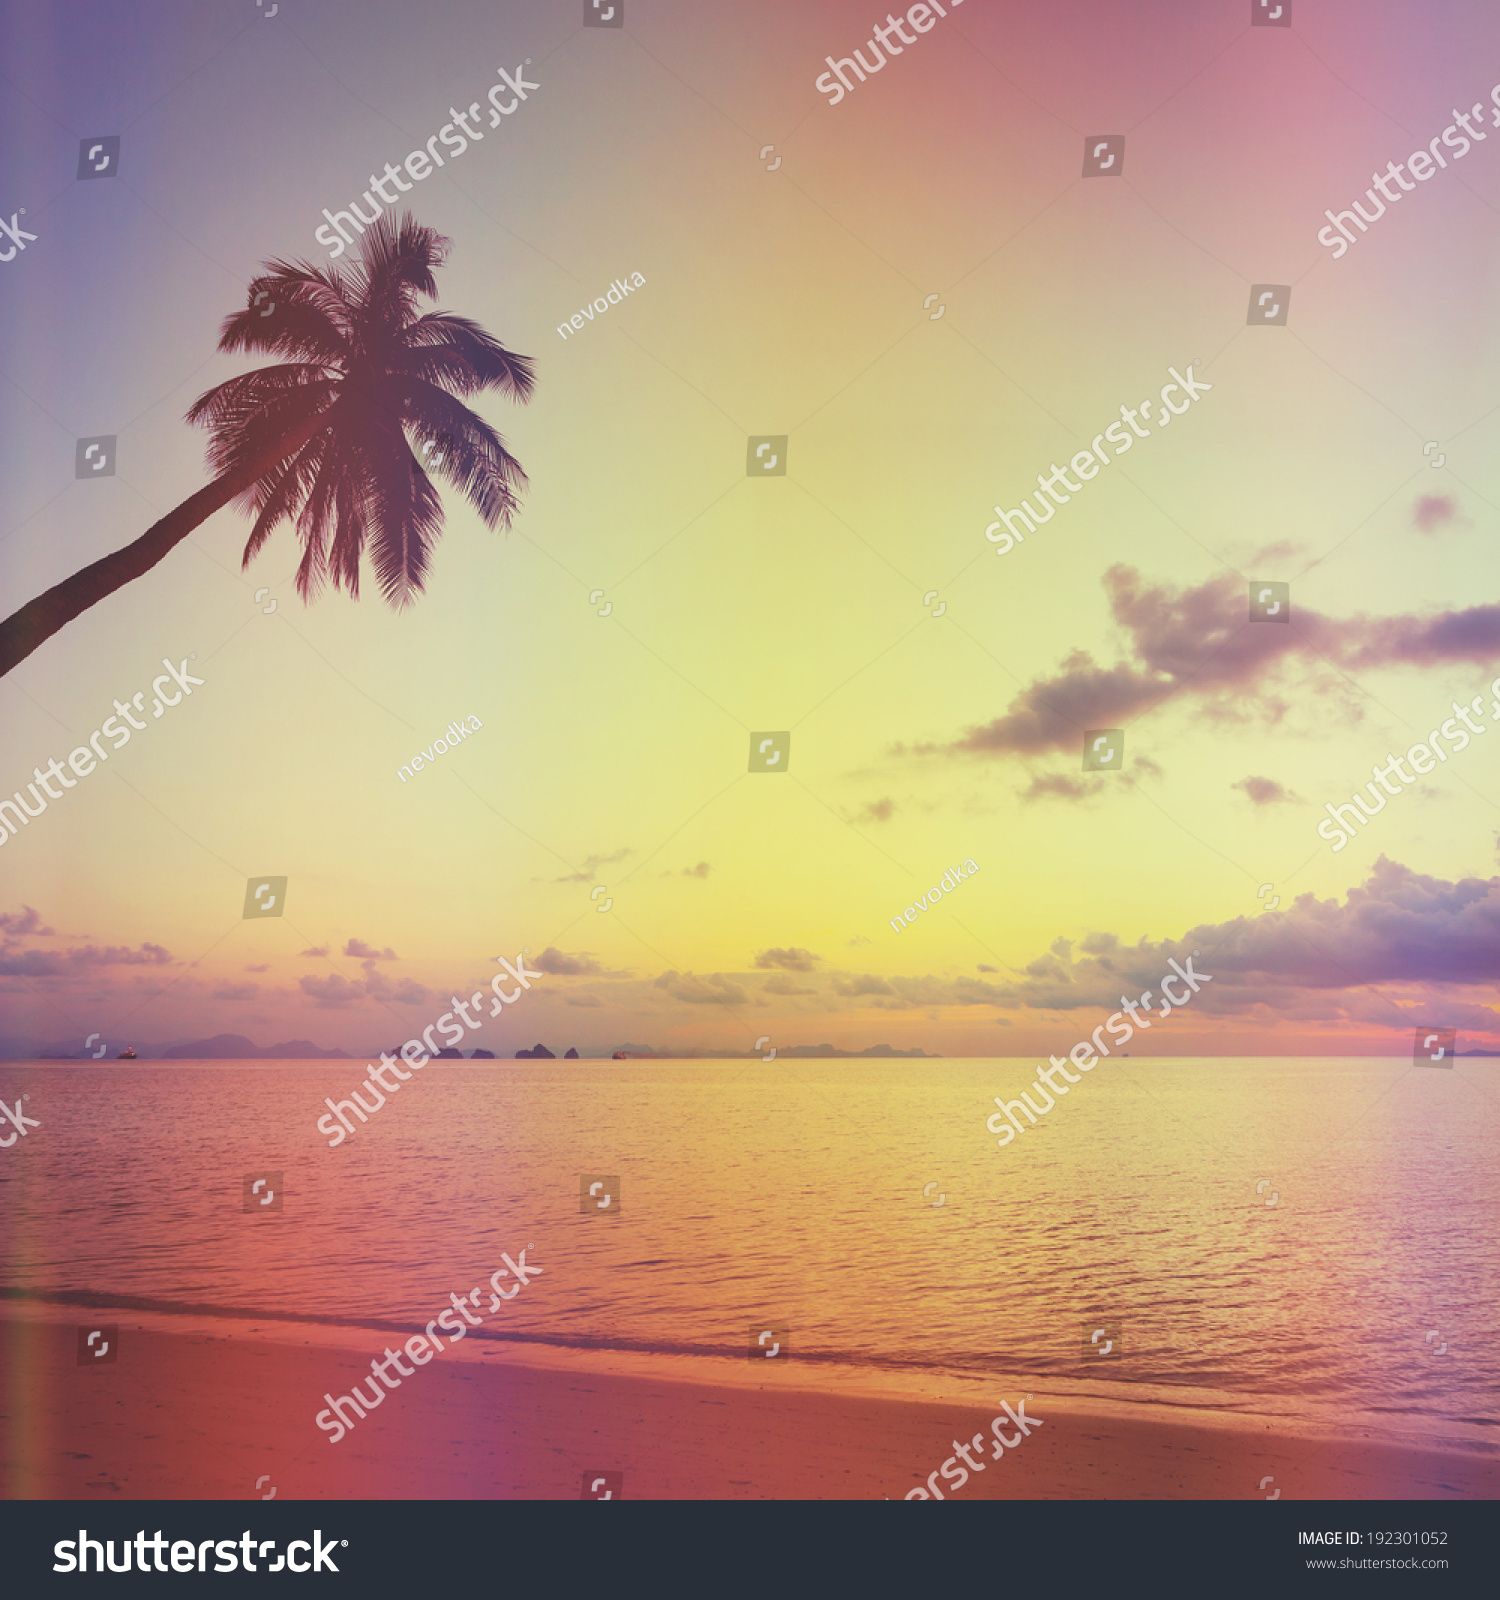 Tropical Sunset With Palm Tree Silhouette At Beach, Retro